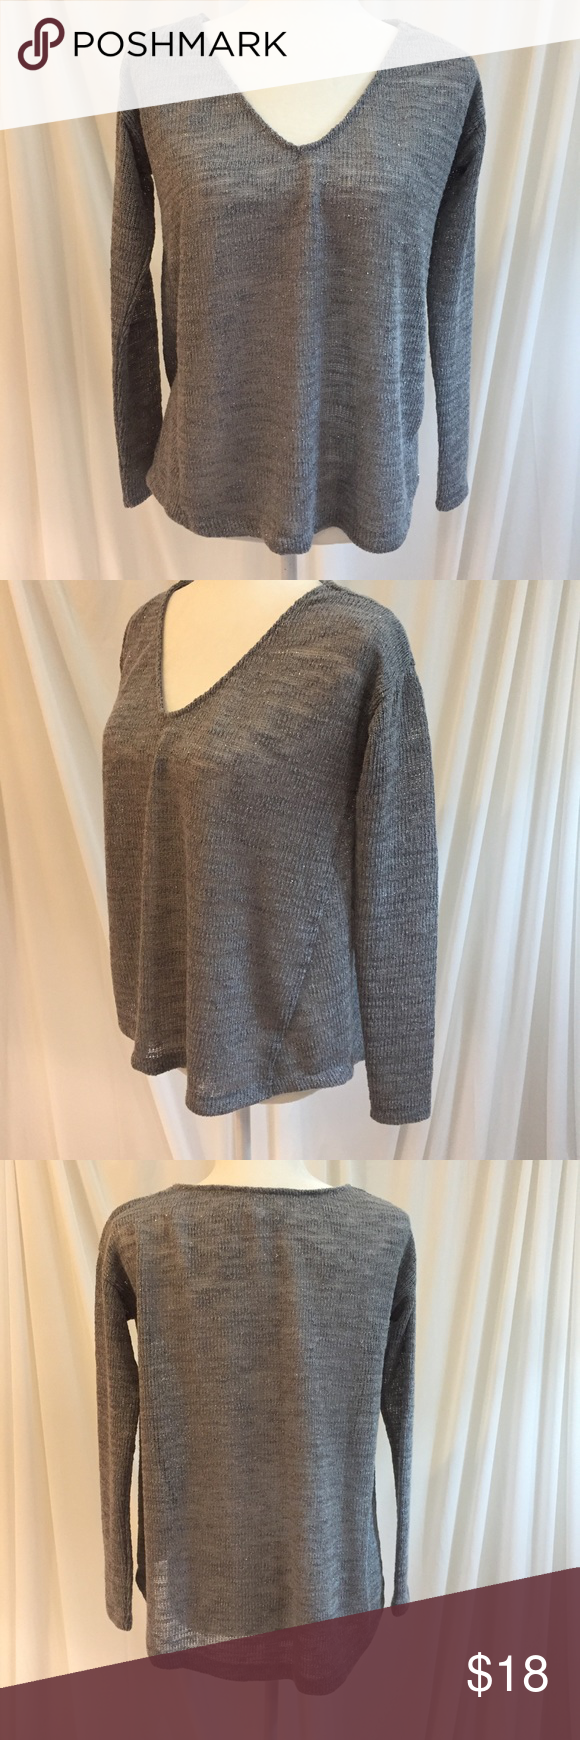 Aeropostale Silver & Grey Sweater | Aeropostale and Flaws